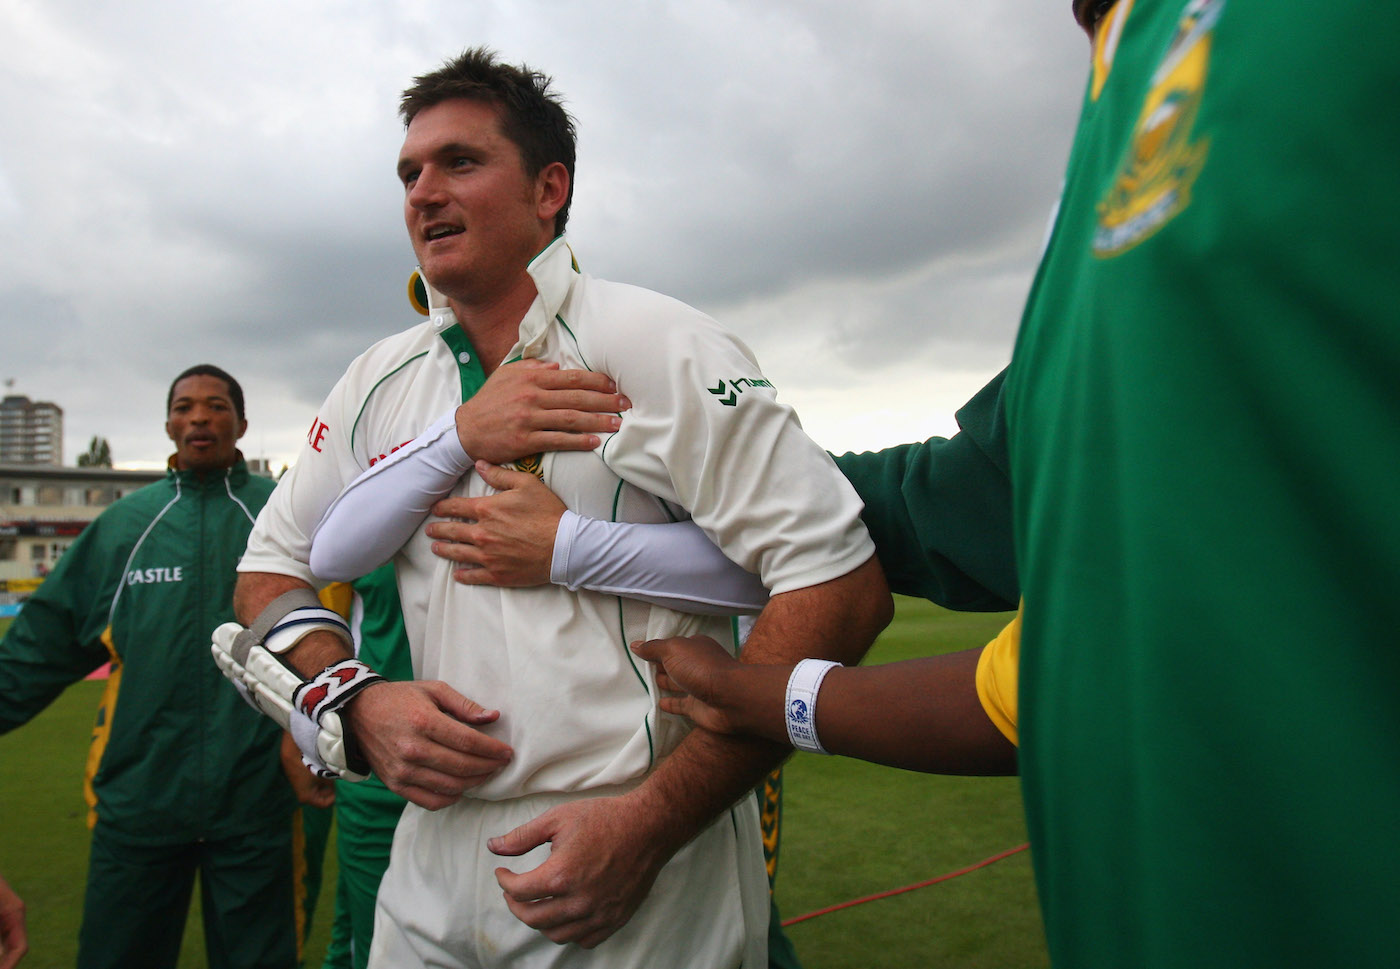 Everyone wants a piece of Smith after he sealed South Africa's first win in England since 1965